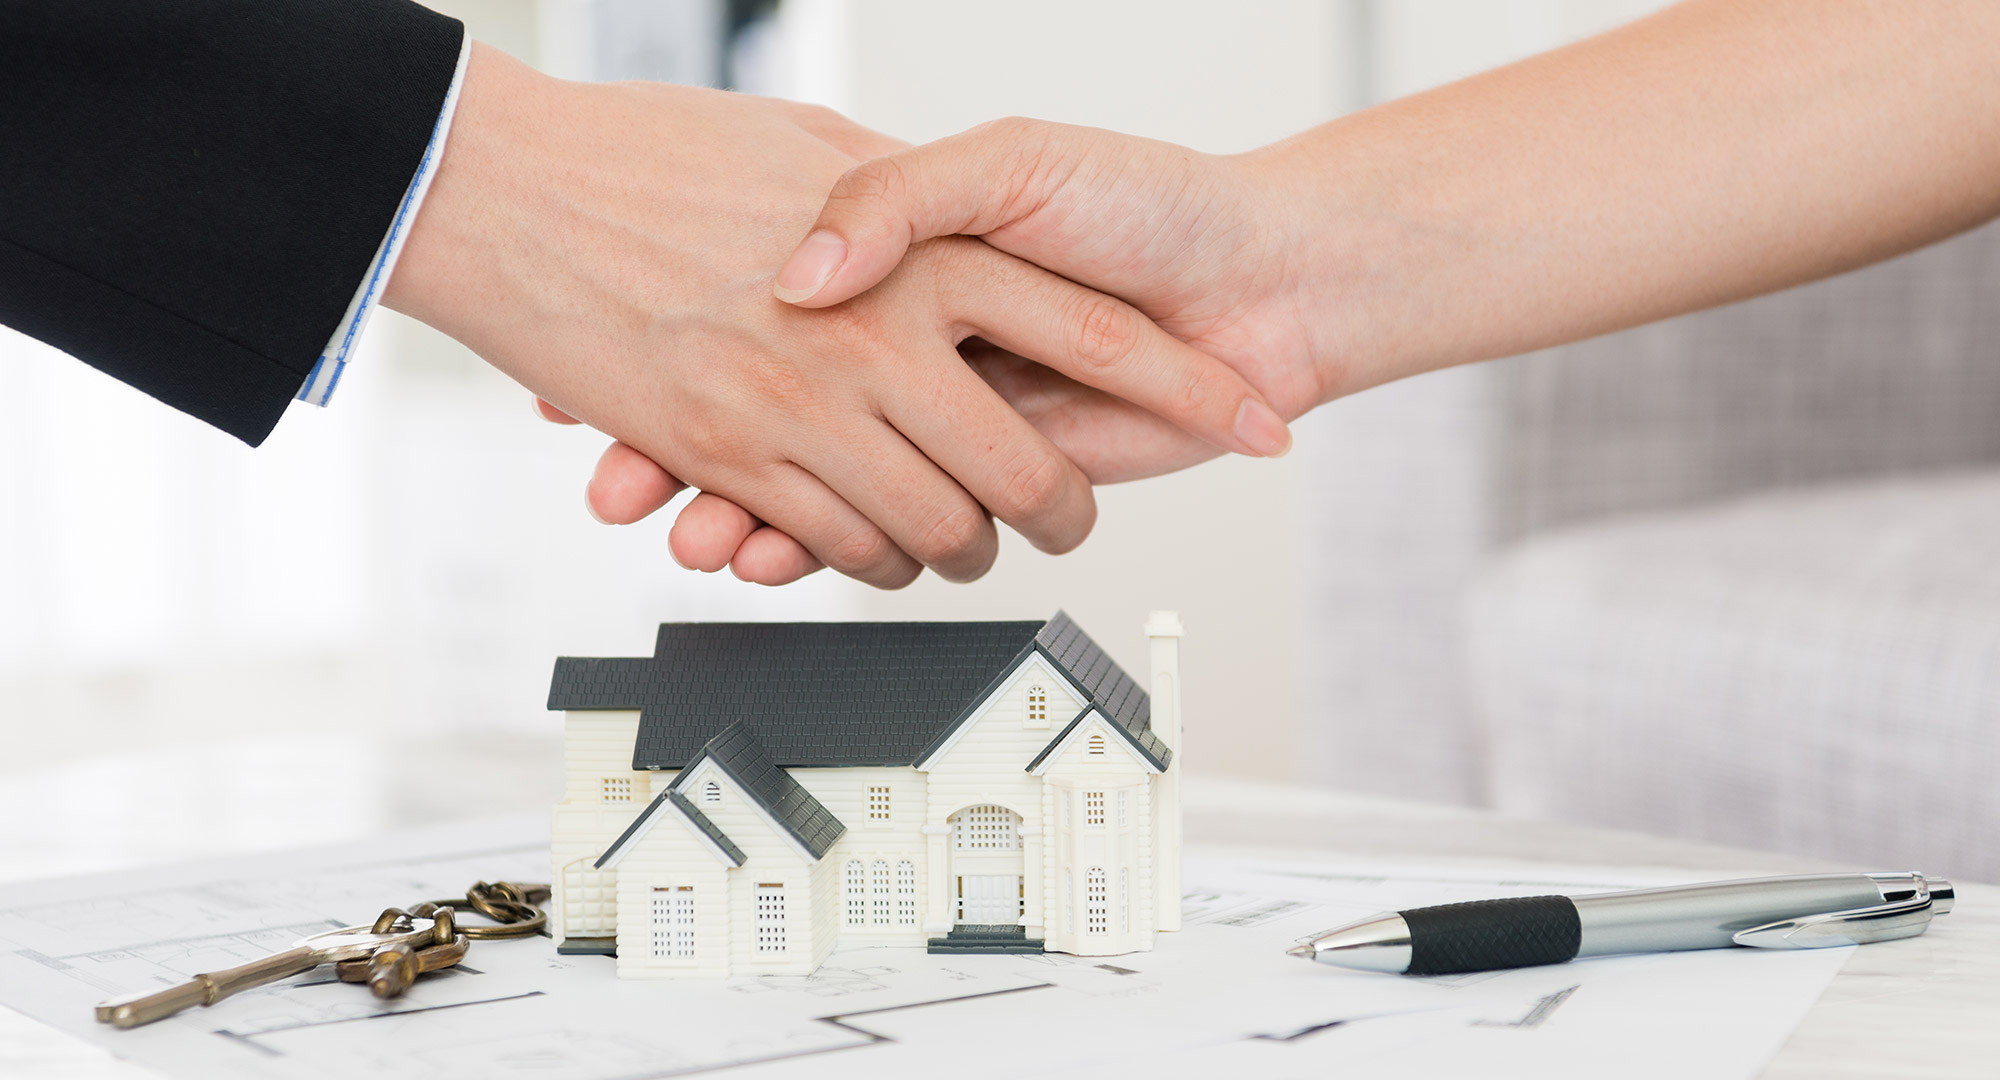 A real estate agent and home buyer shake hands.